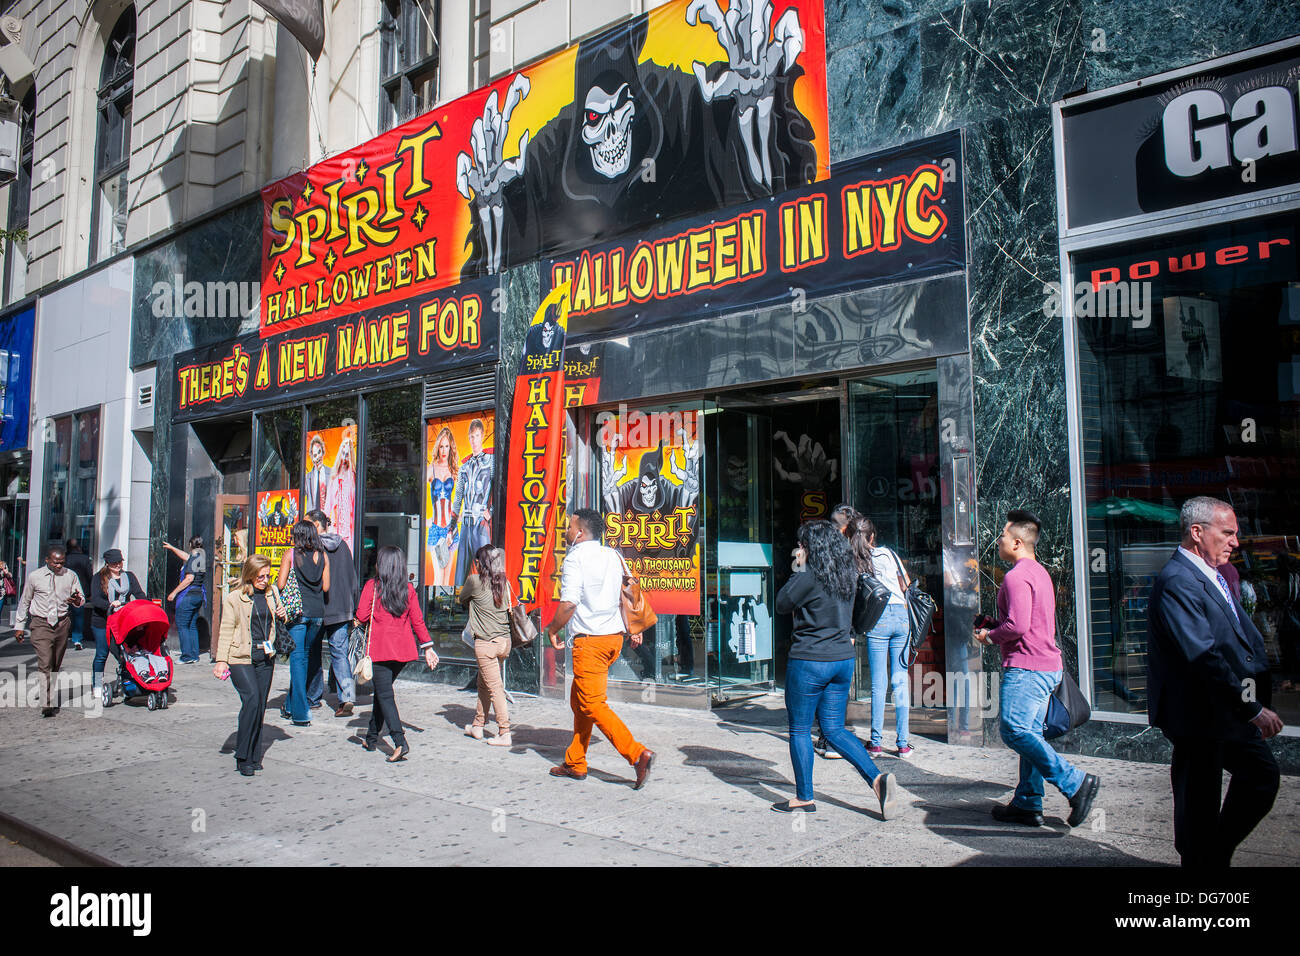 A Spirit Halloween pop-up store in midtown in New York Stock Photo ...